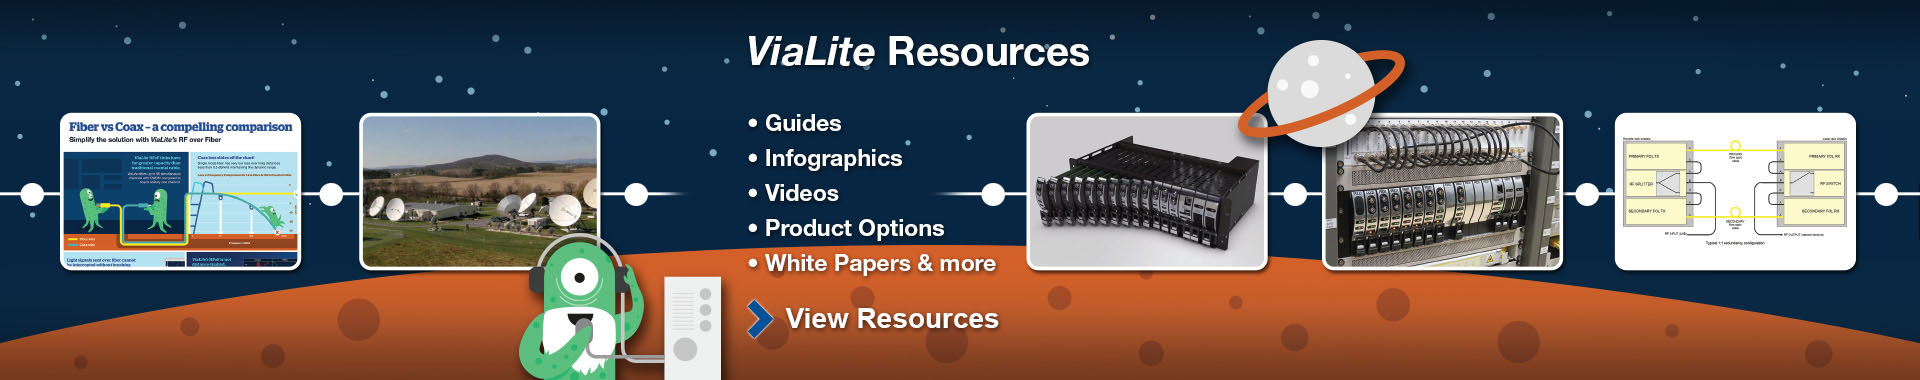 ViaLite Resources section slider